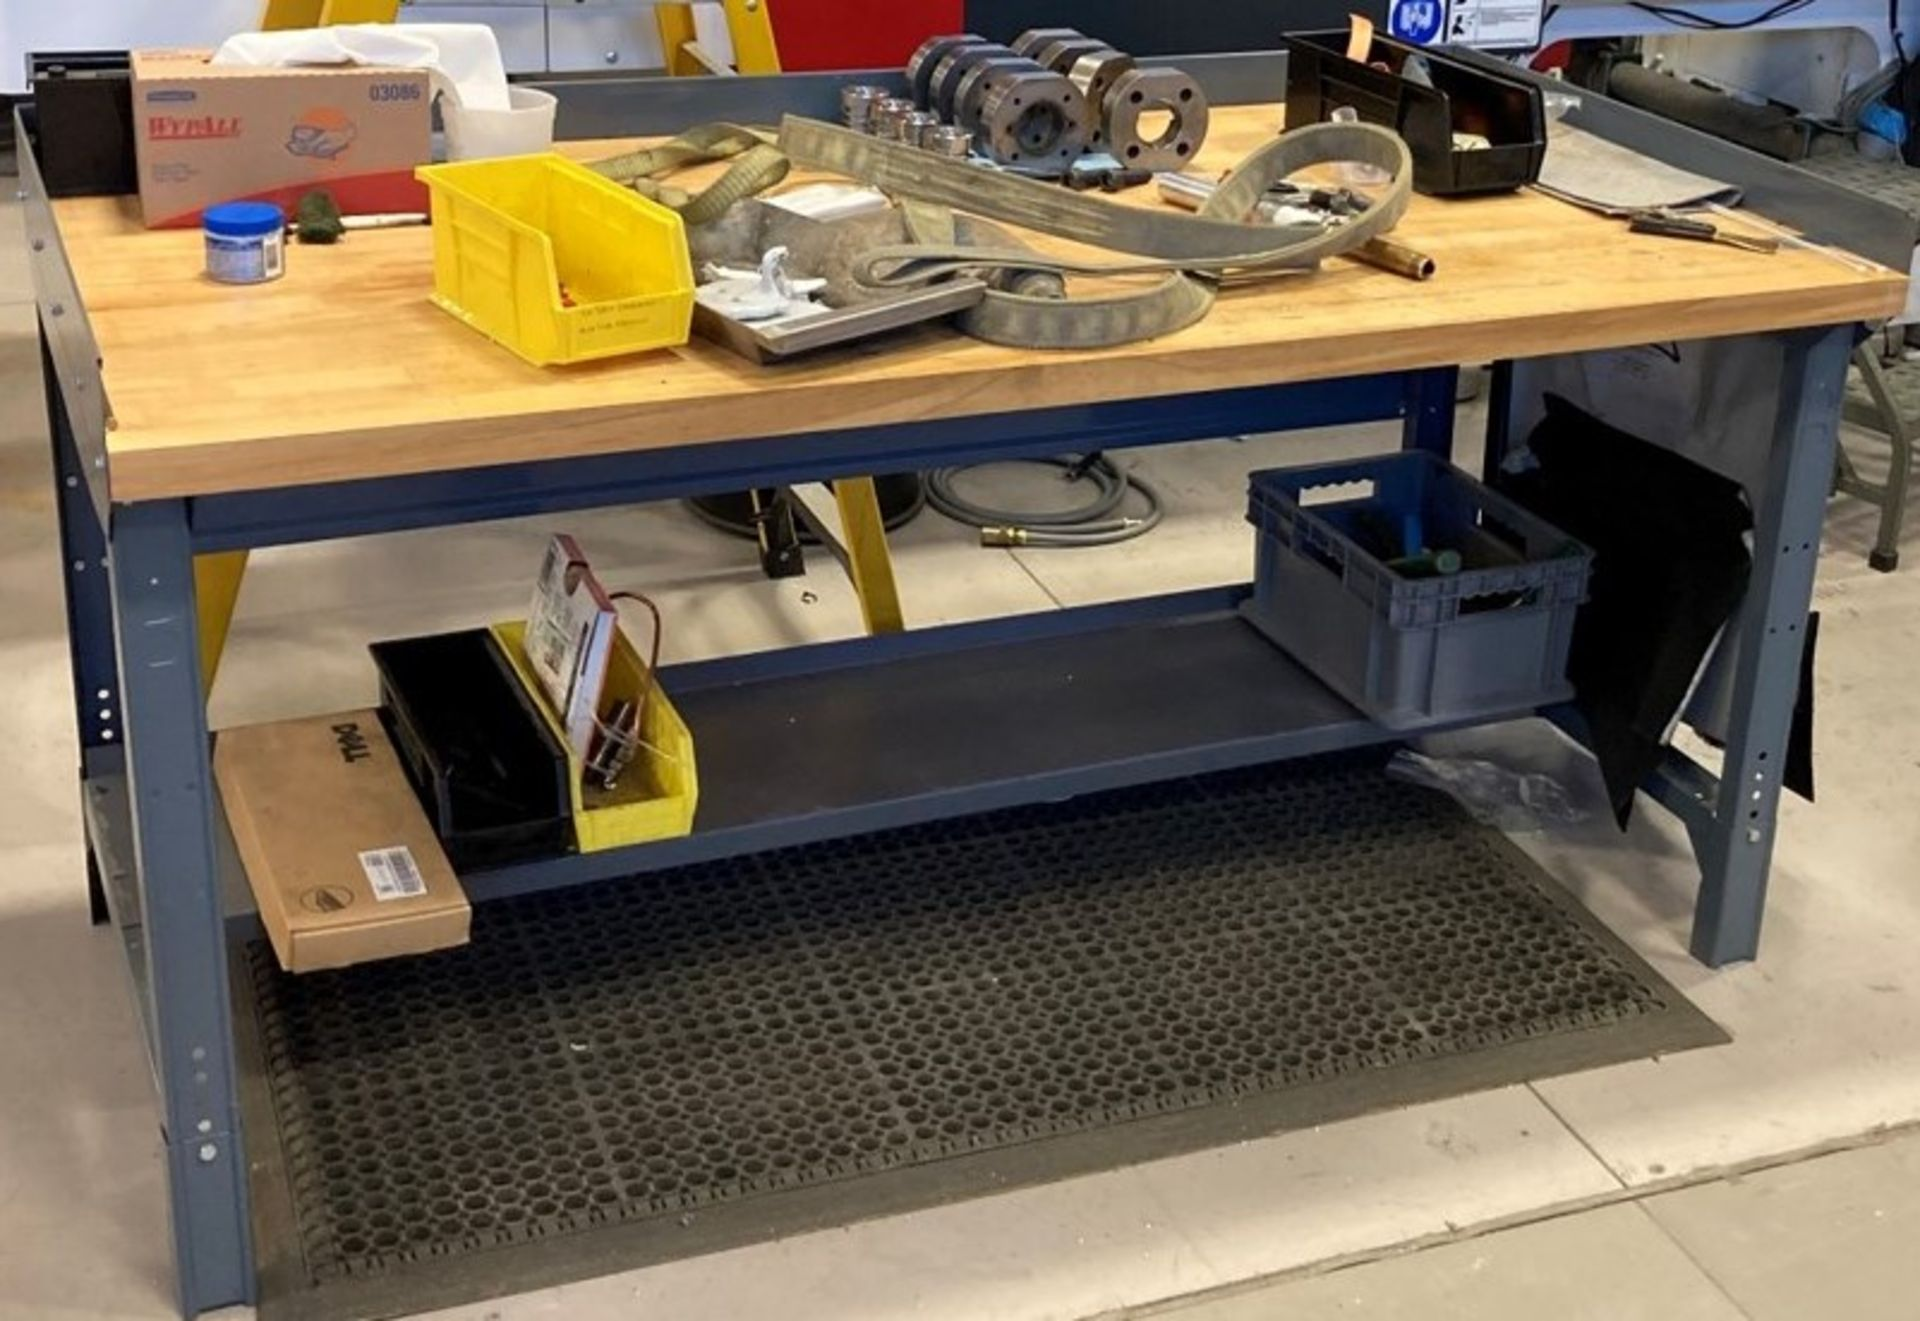 BUTCHER BLOCK TOP WORK BENCH (NO CONTENTS) [RIGGING FEES FOR LOT# 42A - $25 USD PLUS APPLICABLE